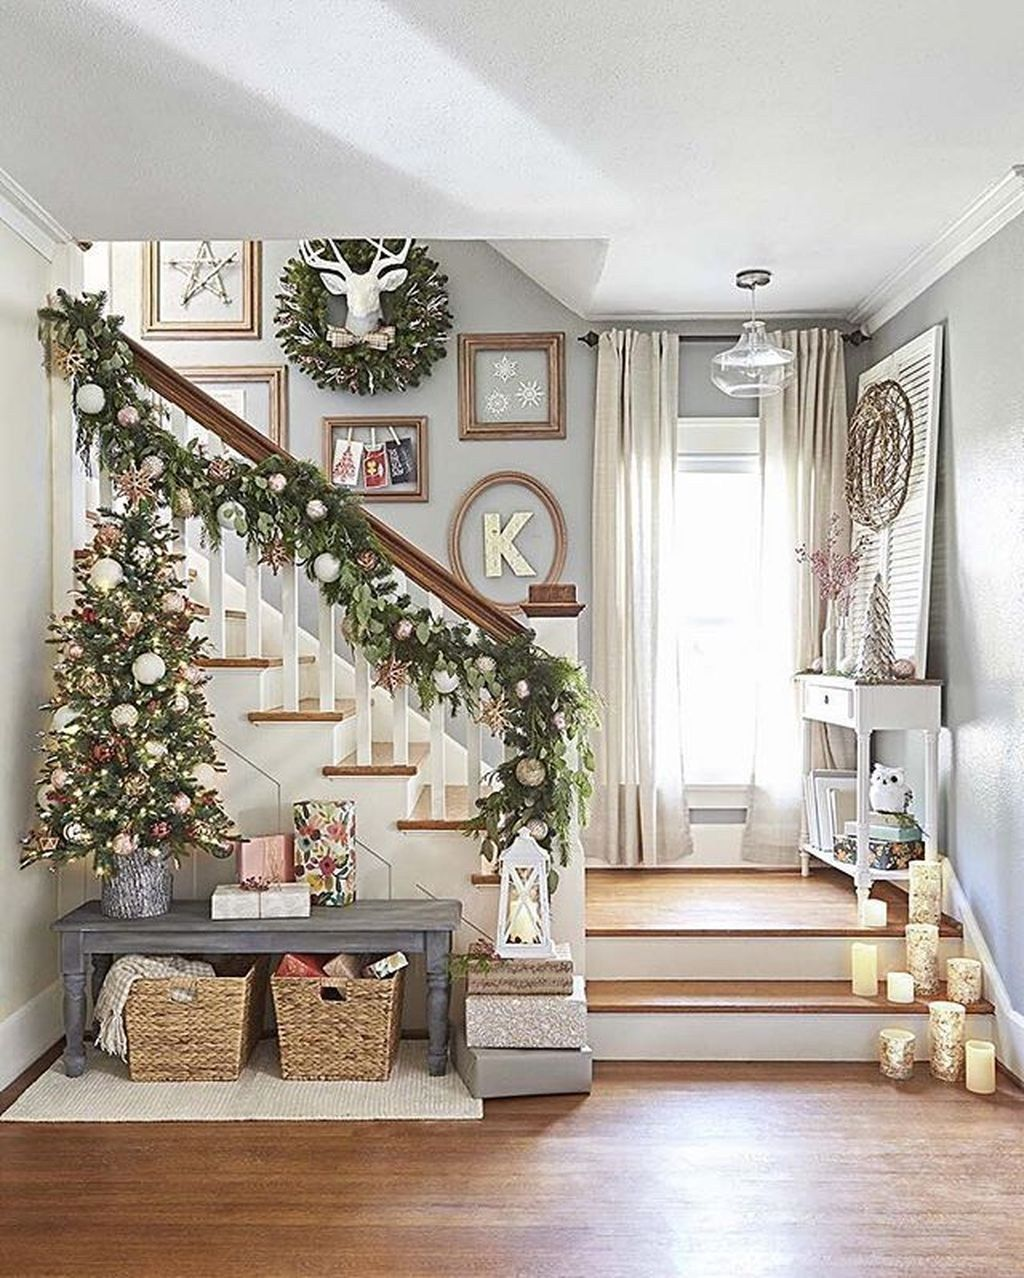 44 Stunning Christmas Decor Ideas With Farmhouse Style For Living